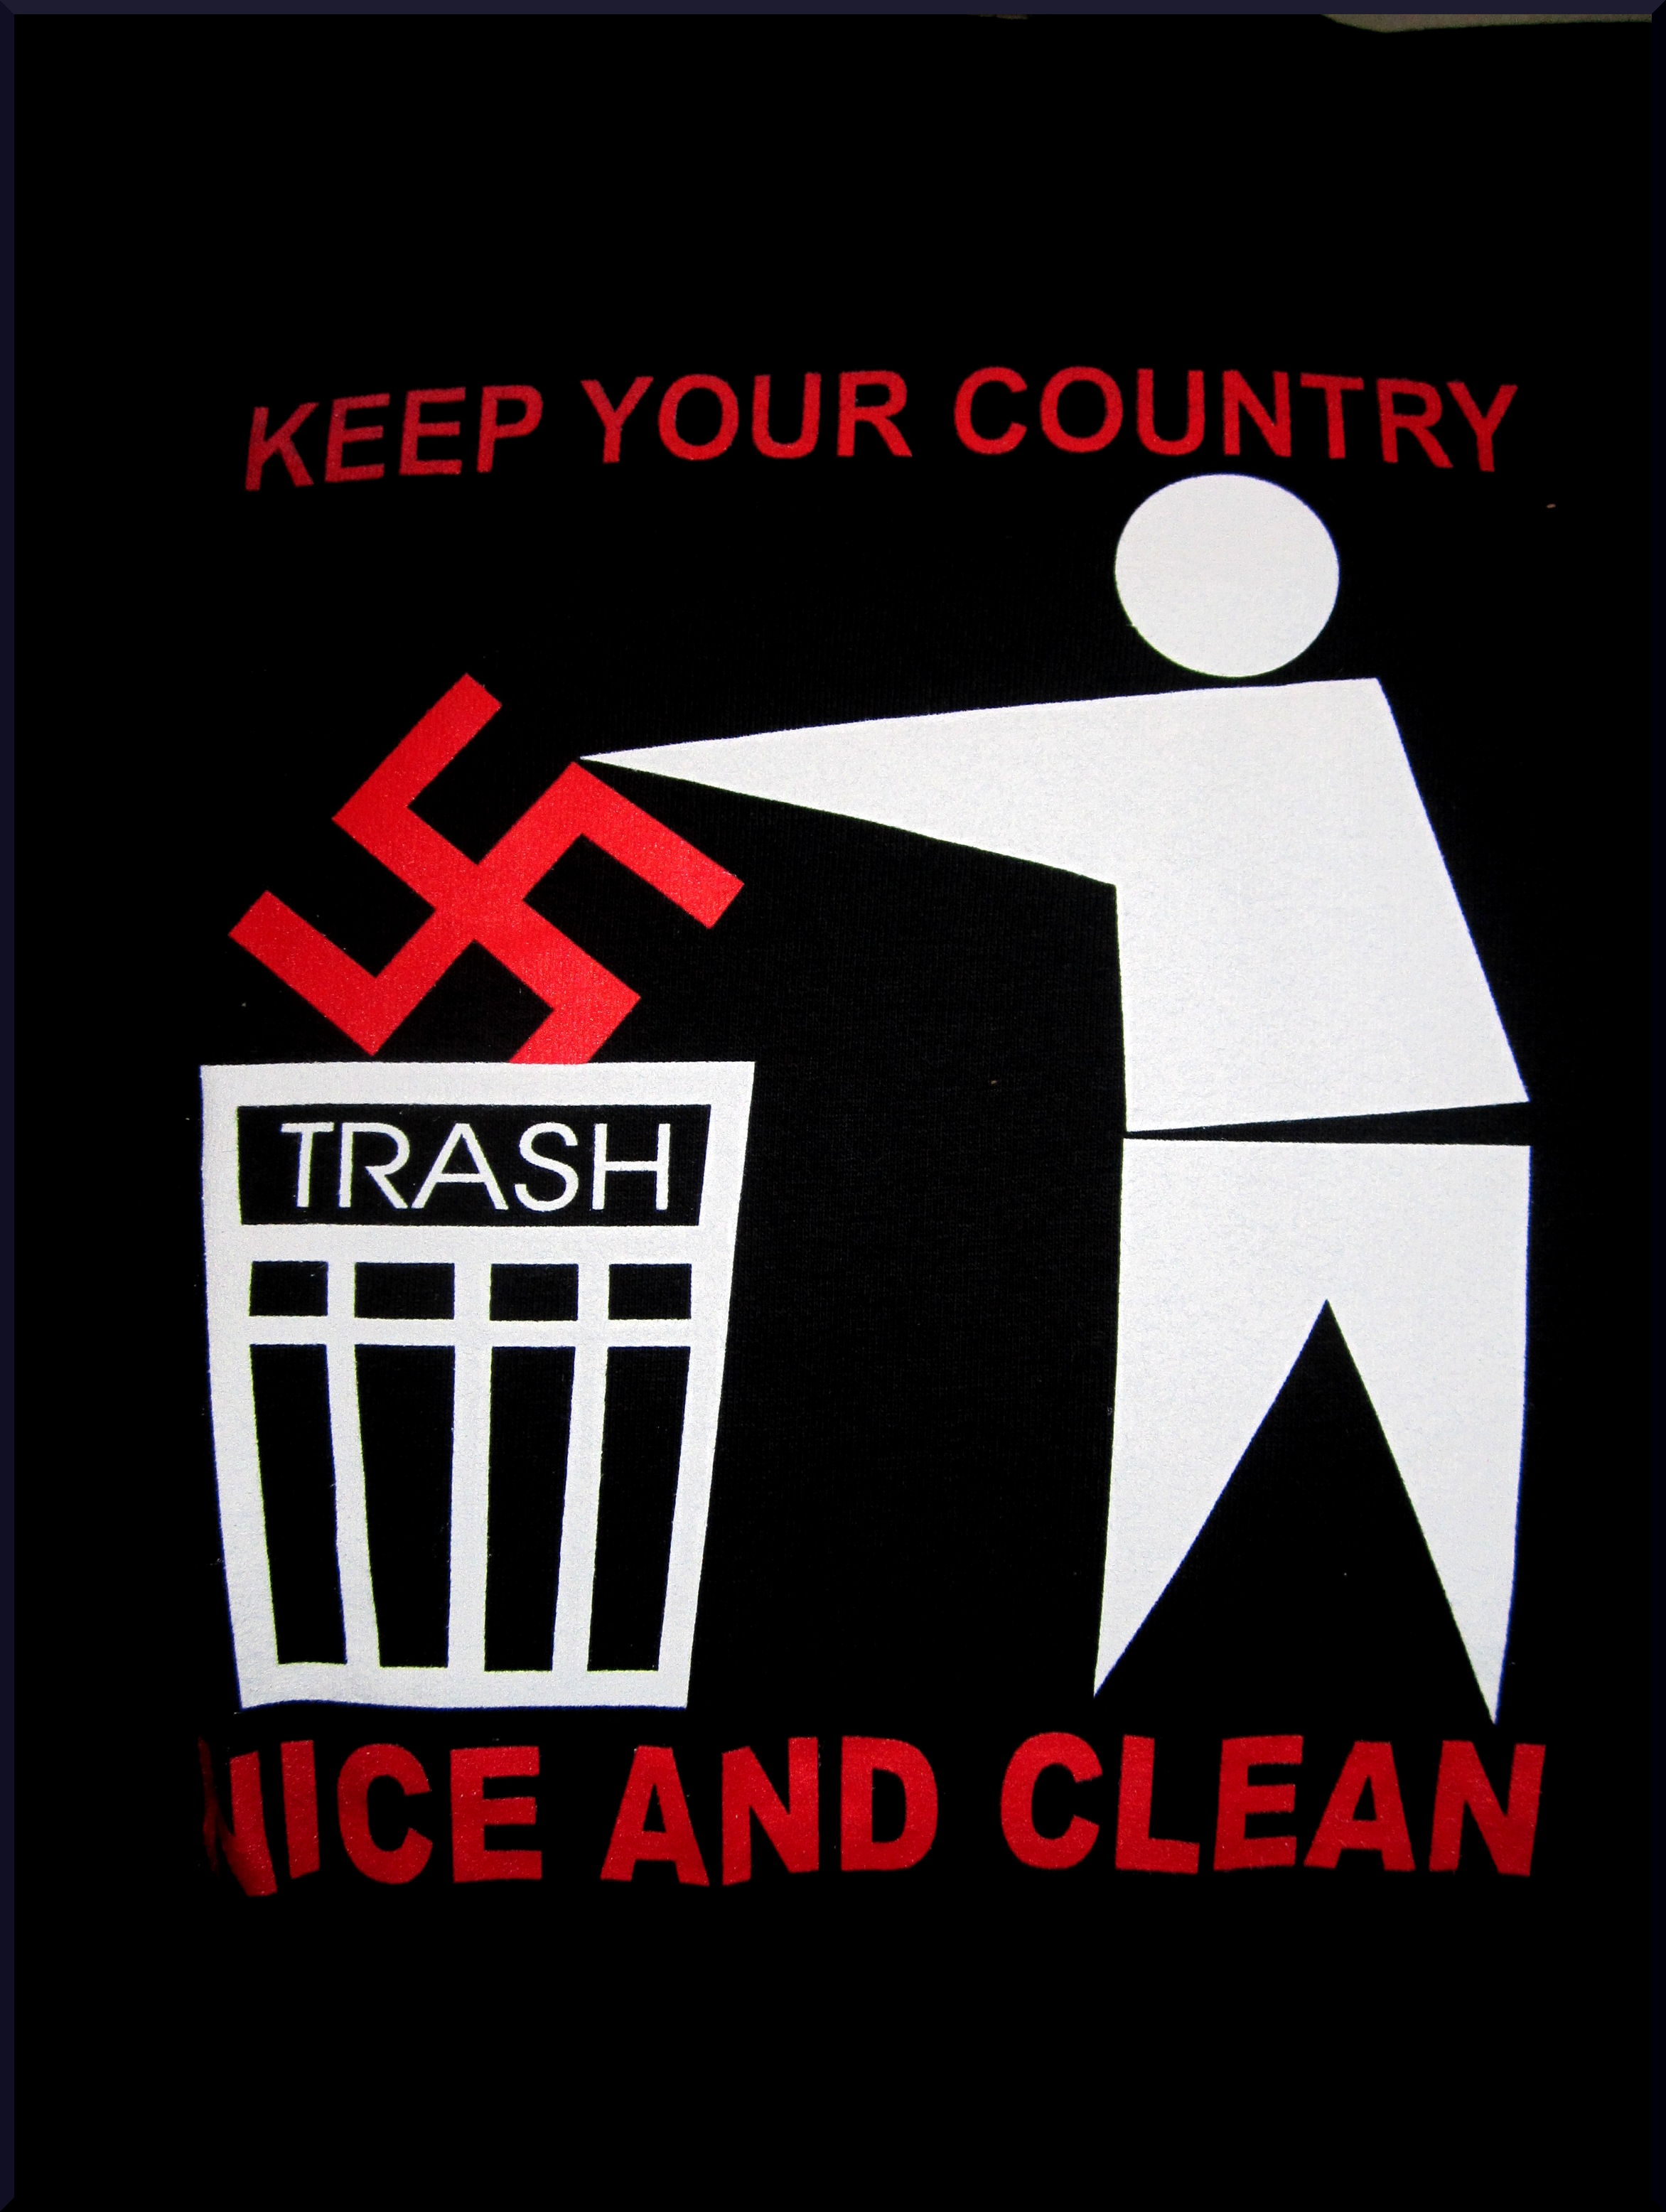 keep_your_country_clean_tees_2.JPG